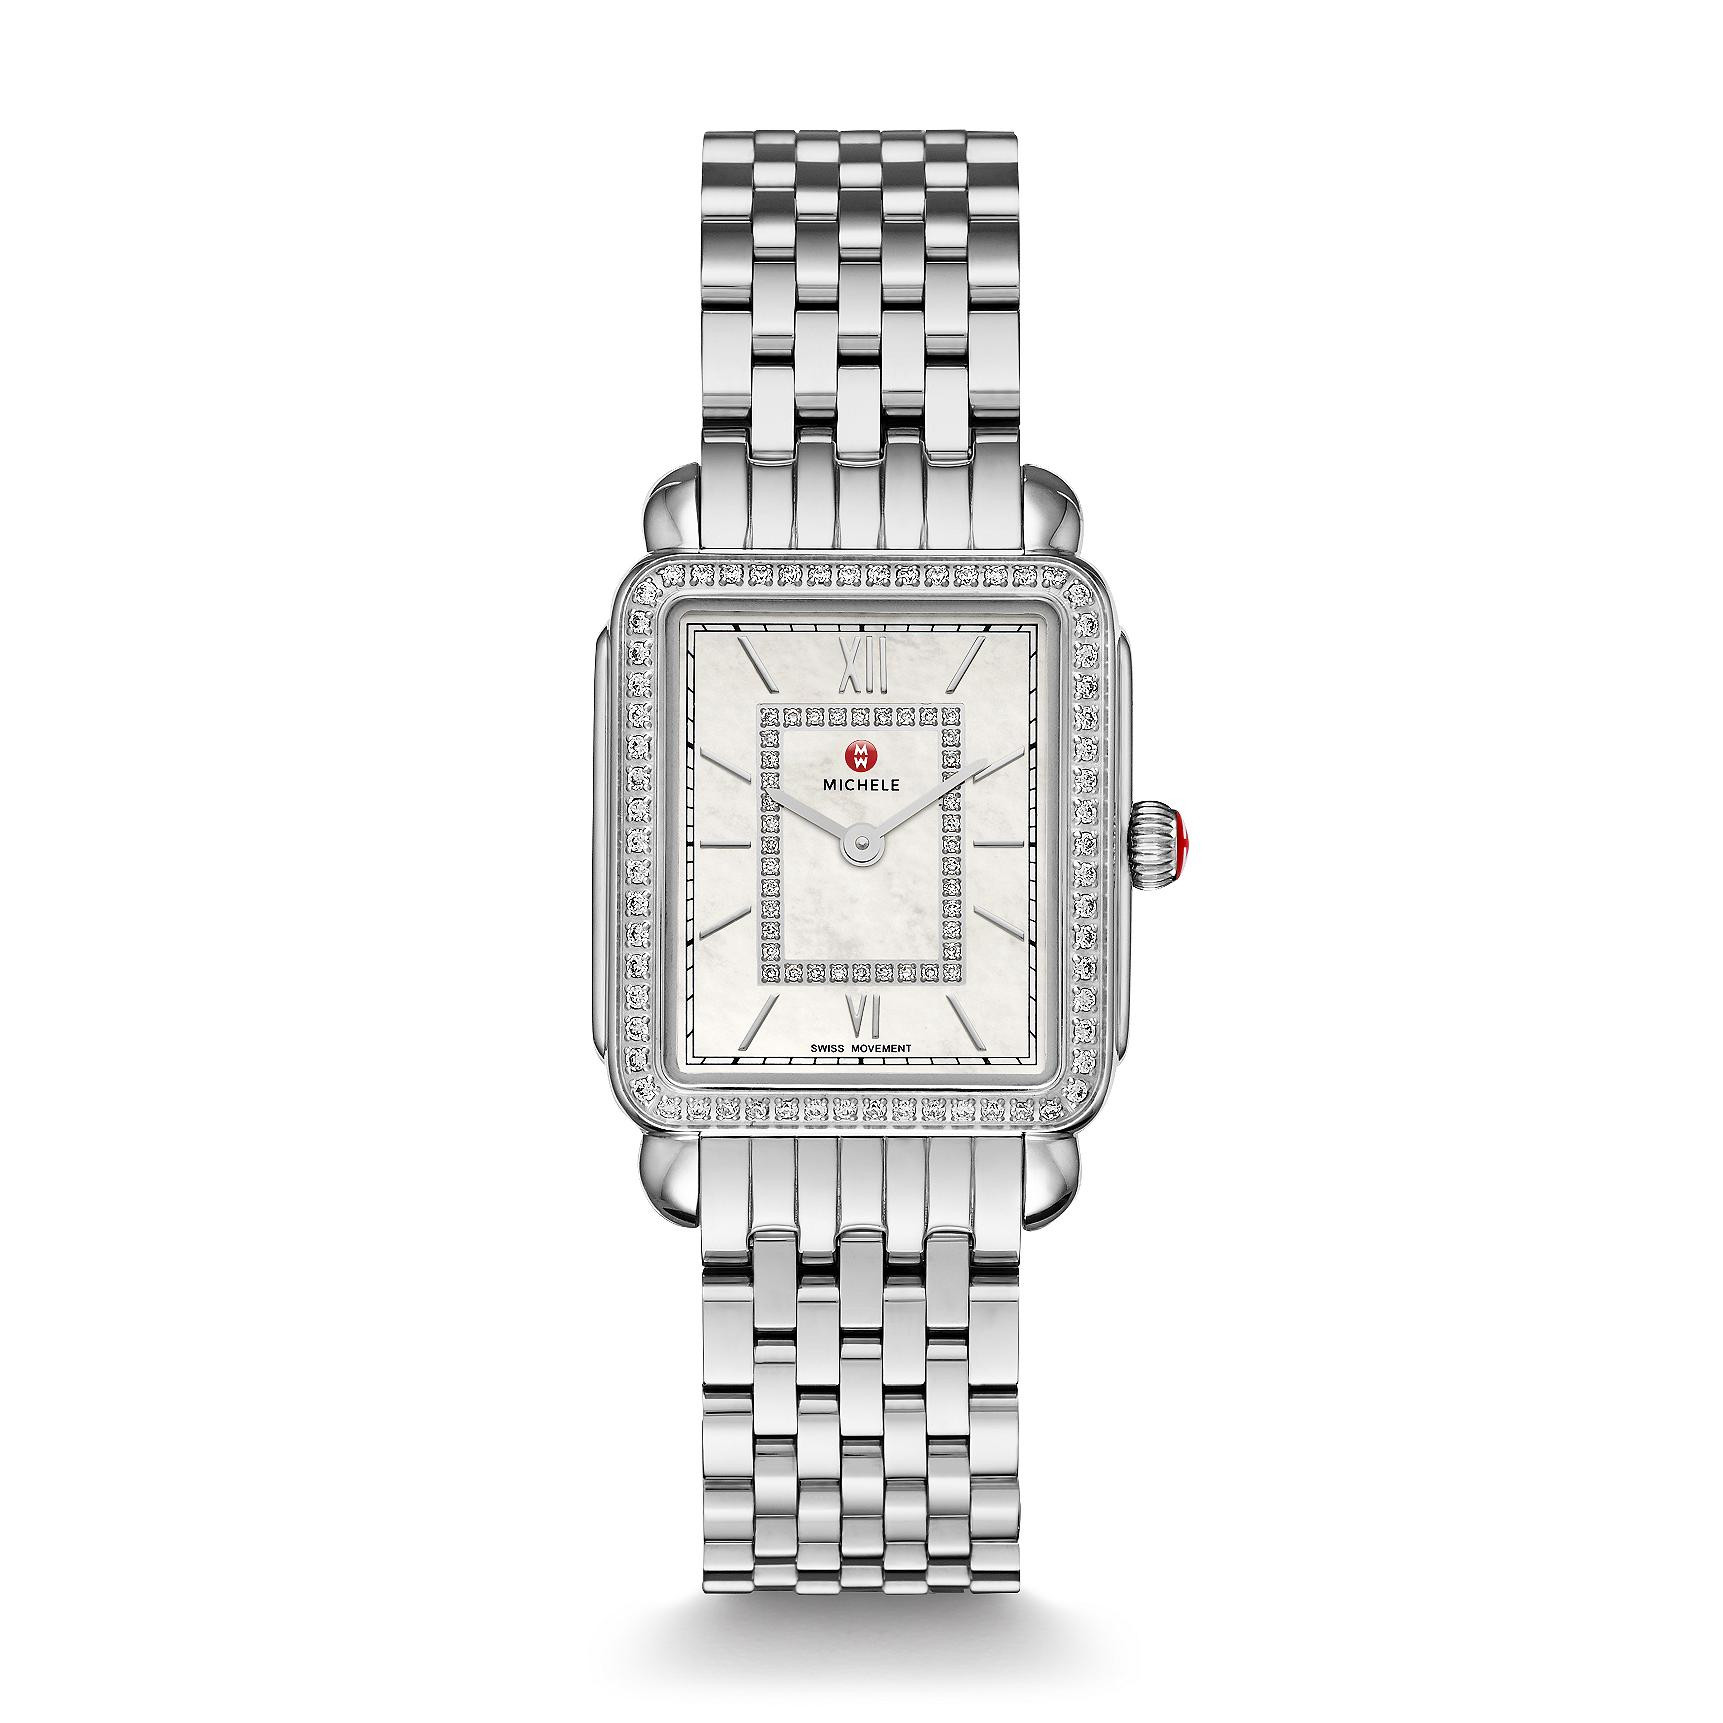 Michele Deco II Mid Stainless Steel Diamond Dial Watch full view